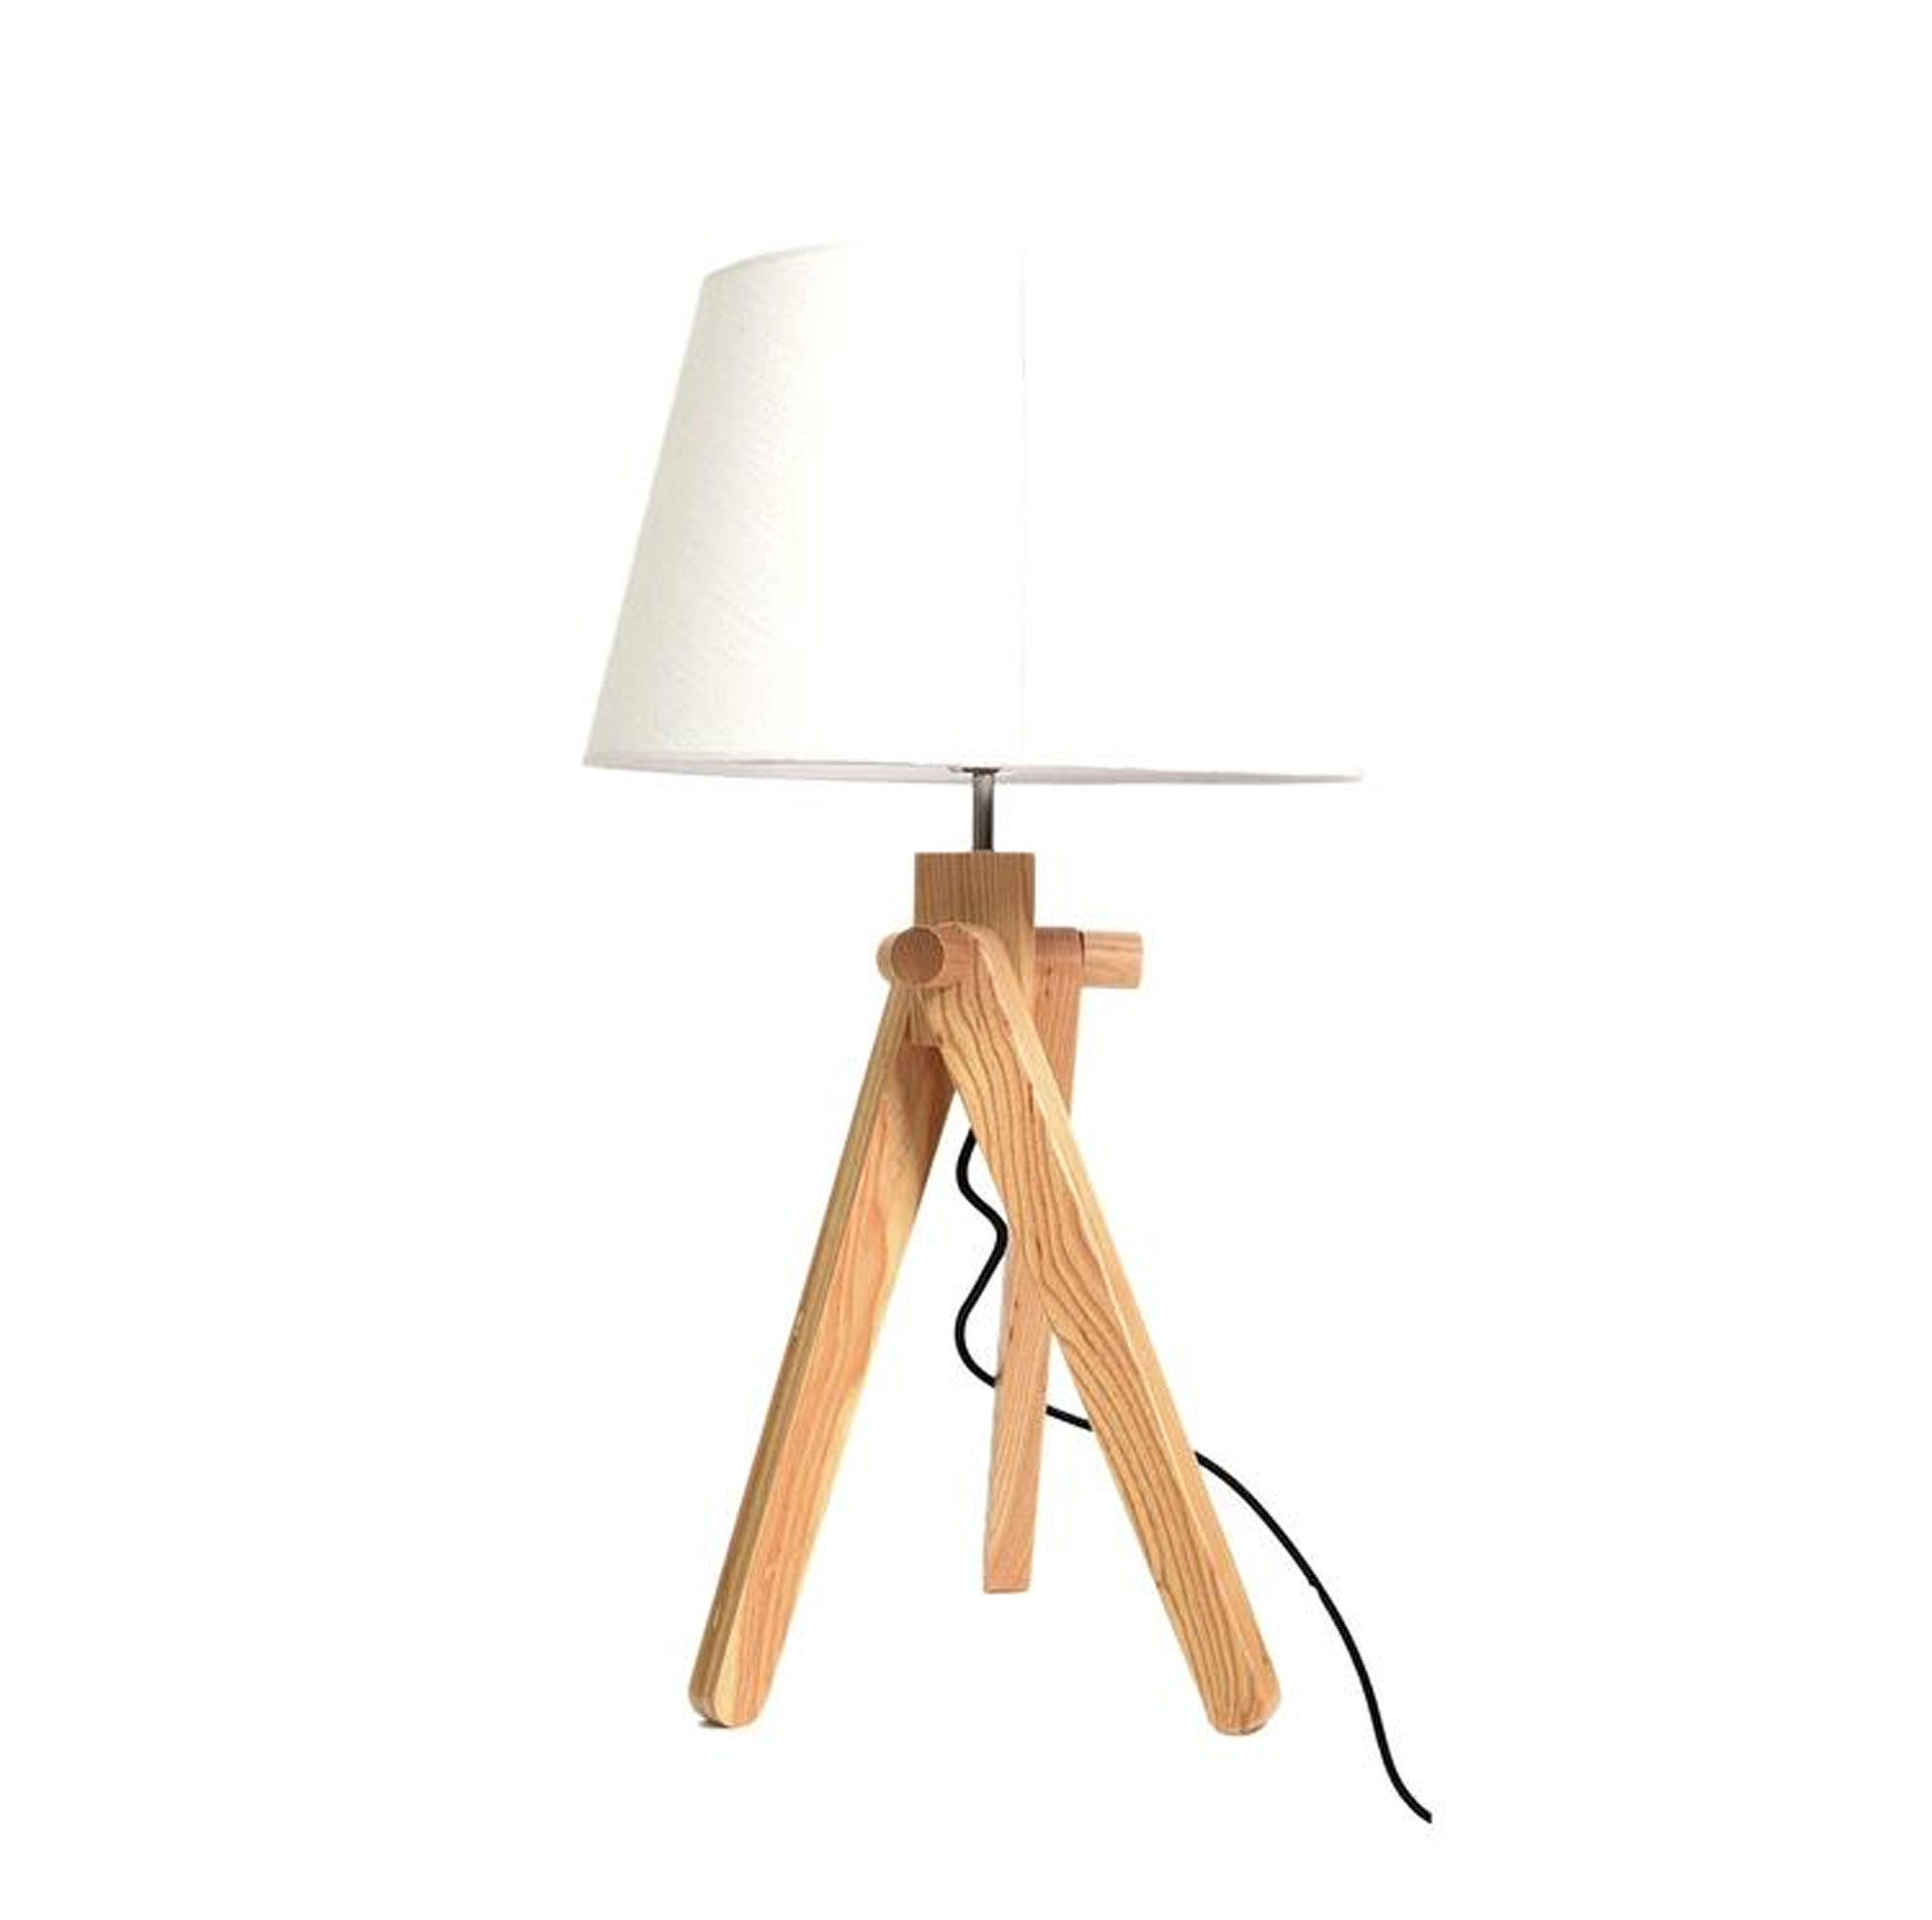 Desk\table Lamp - Trio Solid Wood Solid Wood Table Lamp BPTD056-N